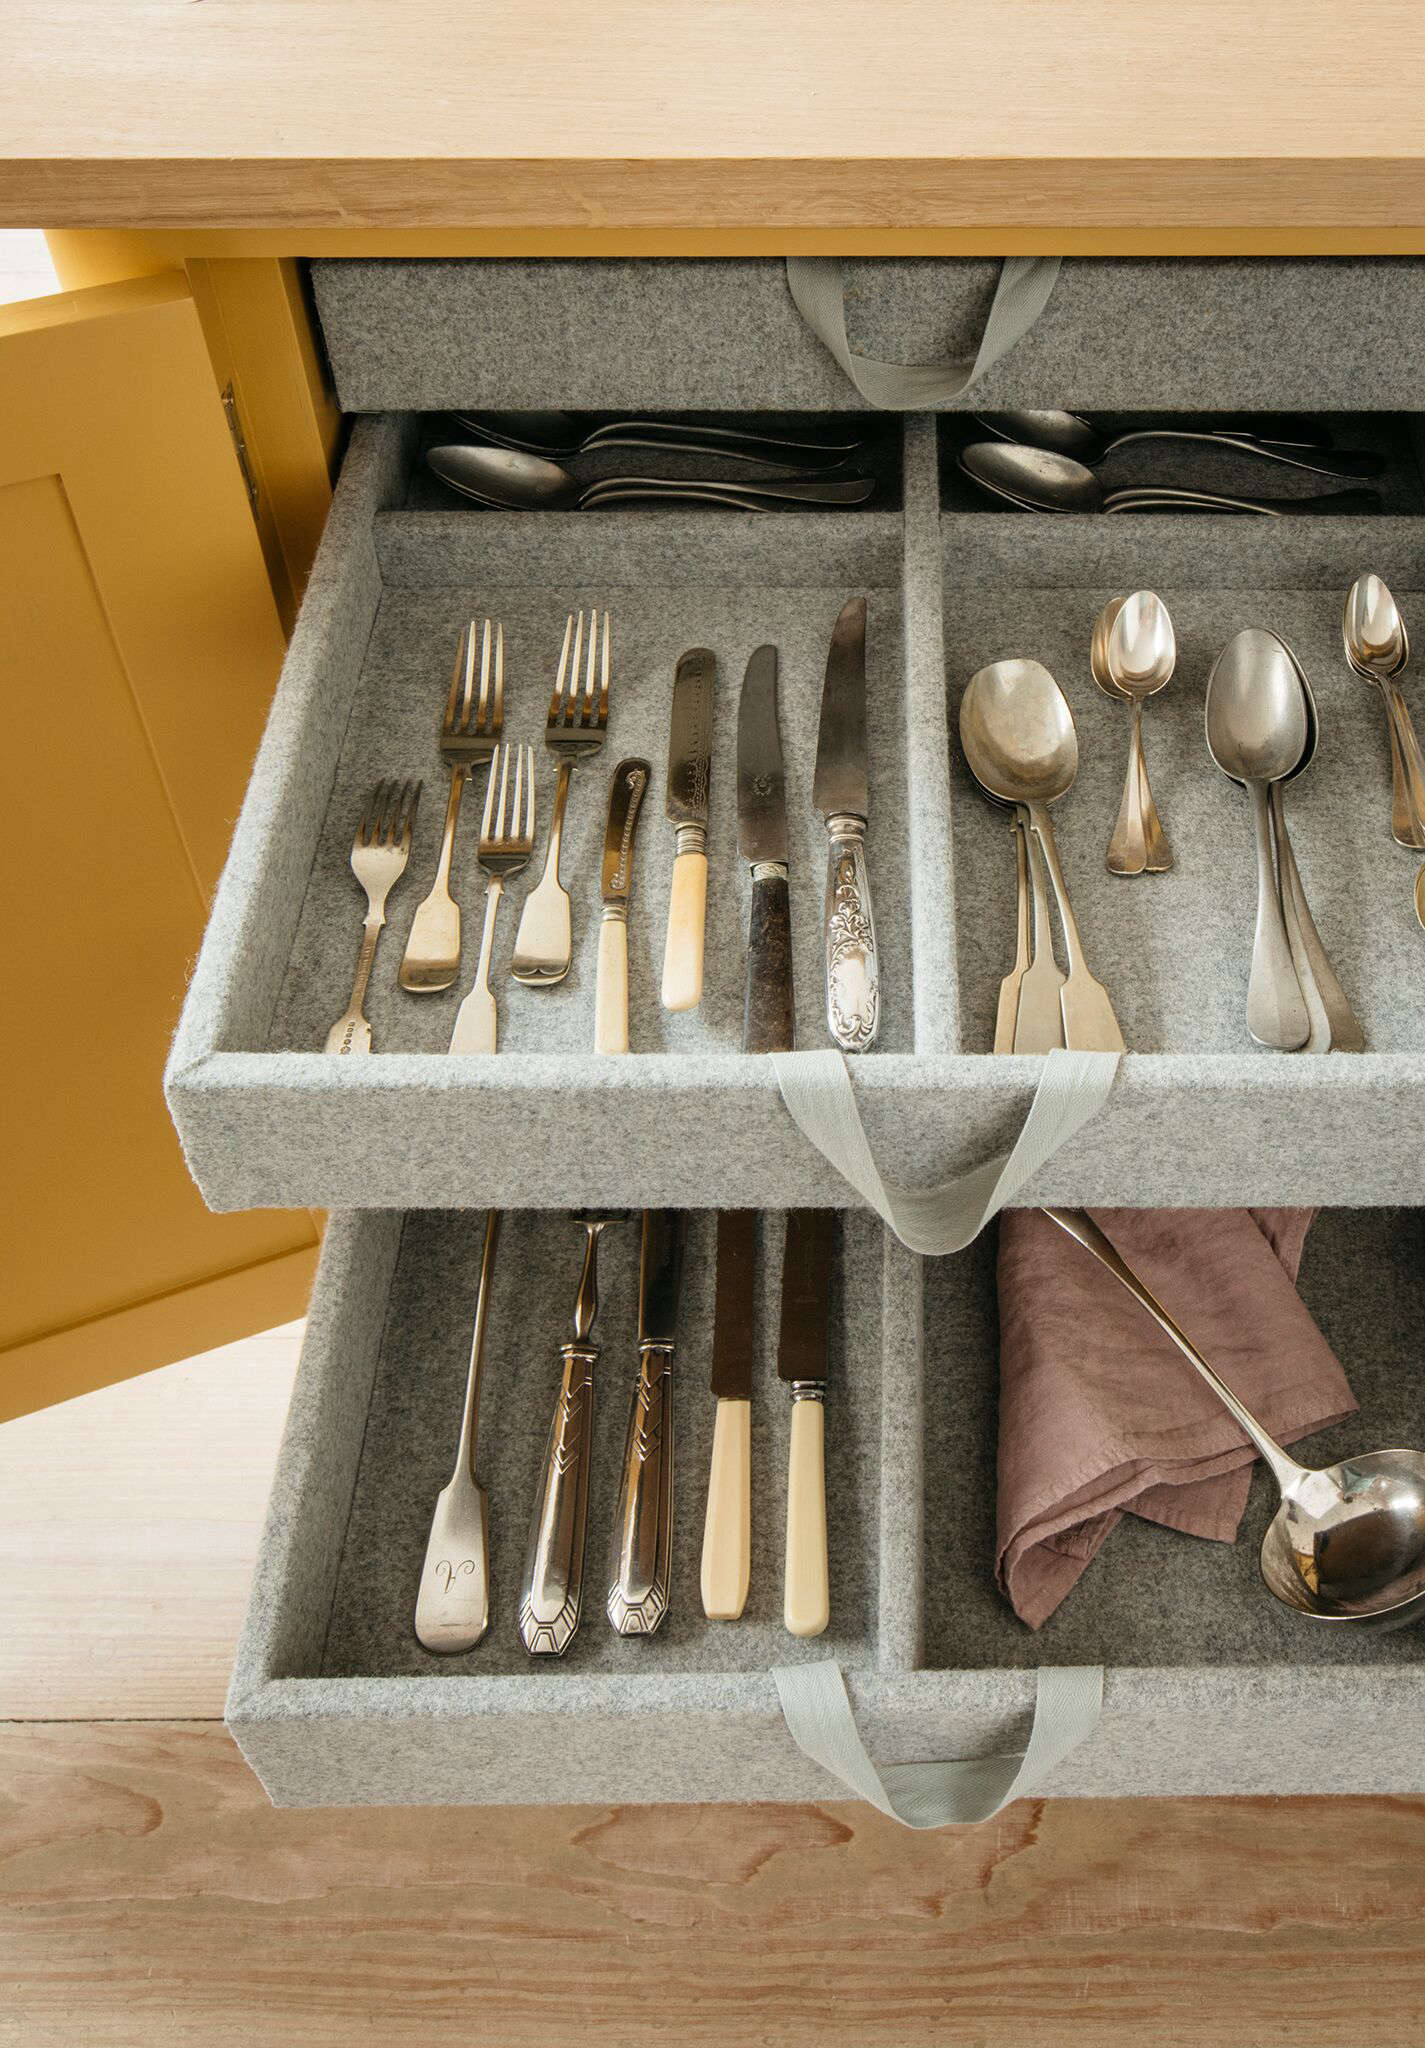 A cutlery drawer is tucked into the kitchen island.